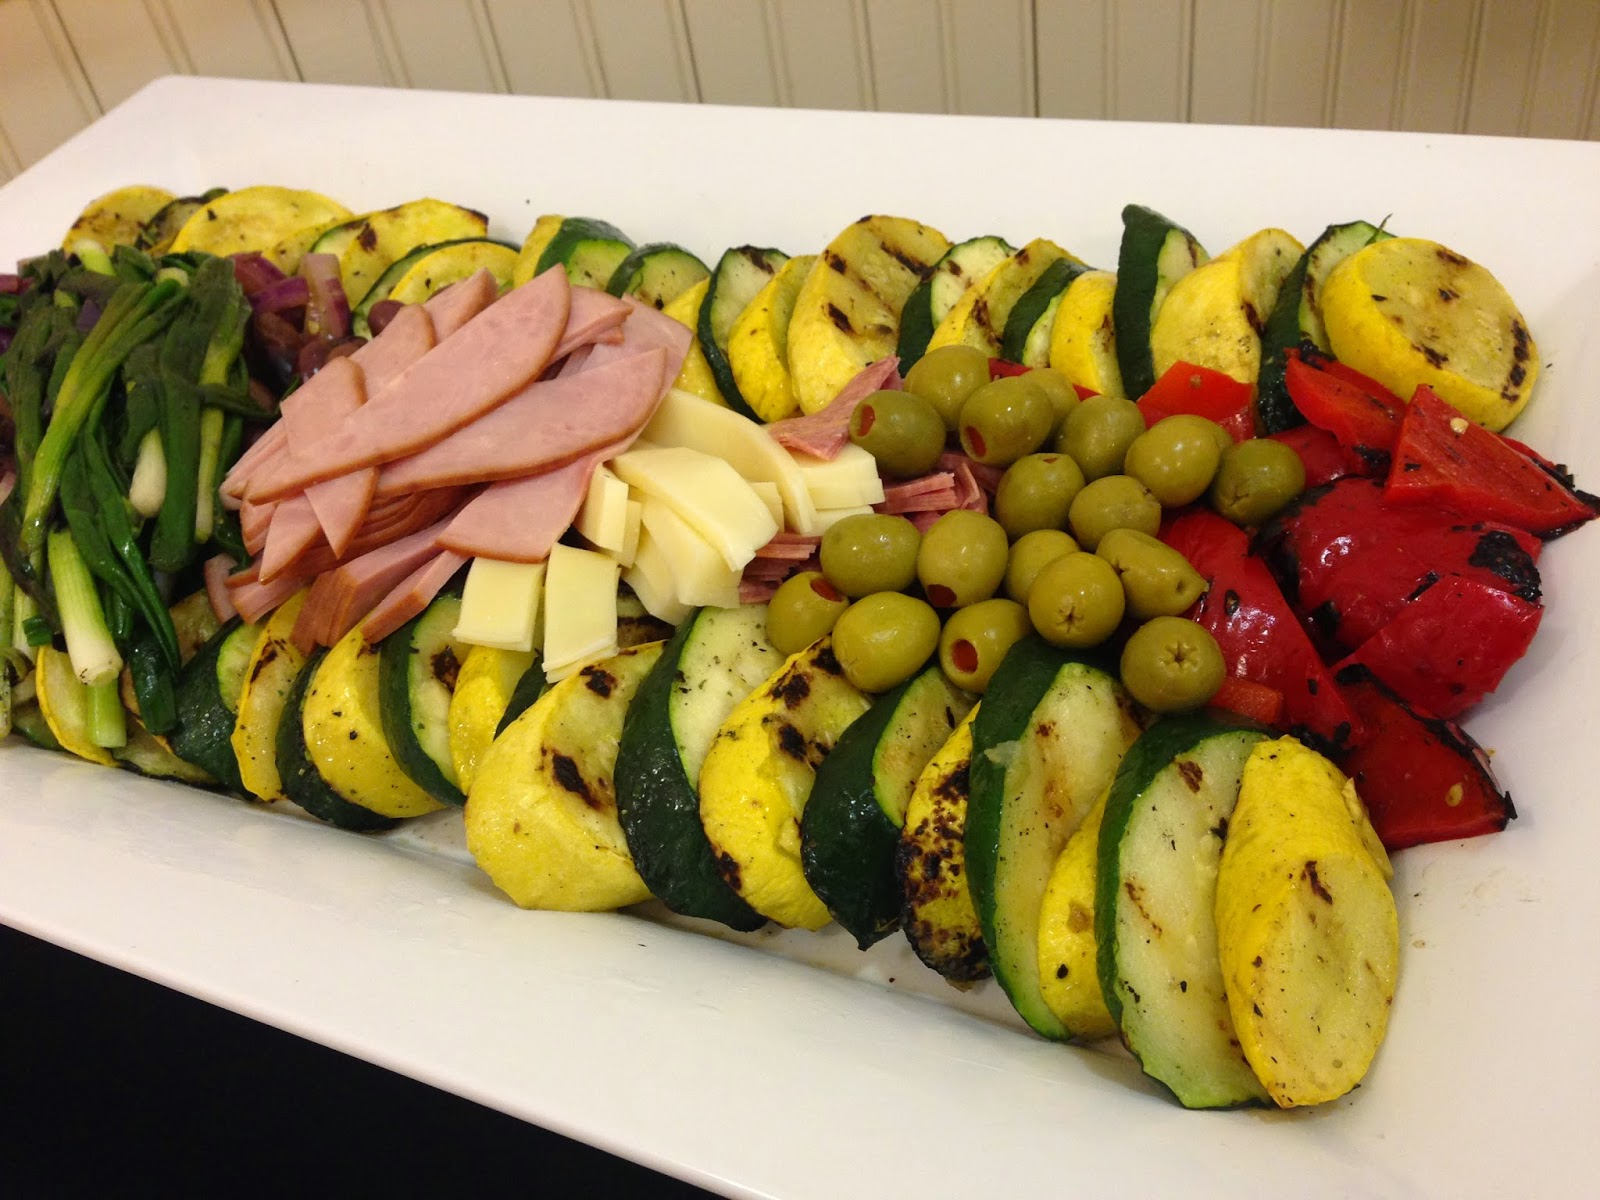 Mixed Vegetables, Wedding Food, Culinary Art Catering